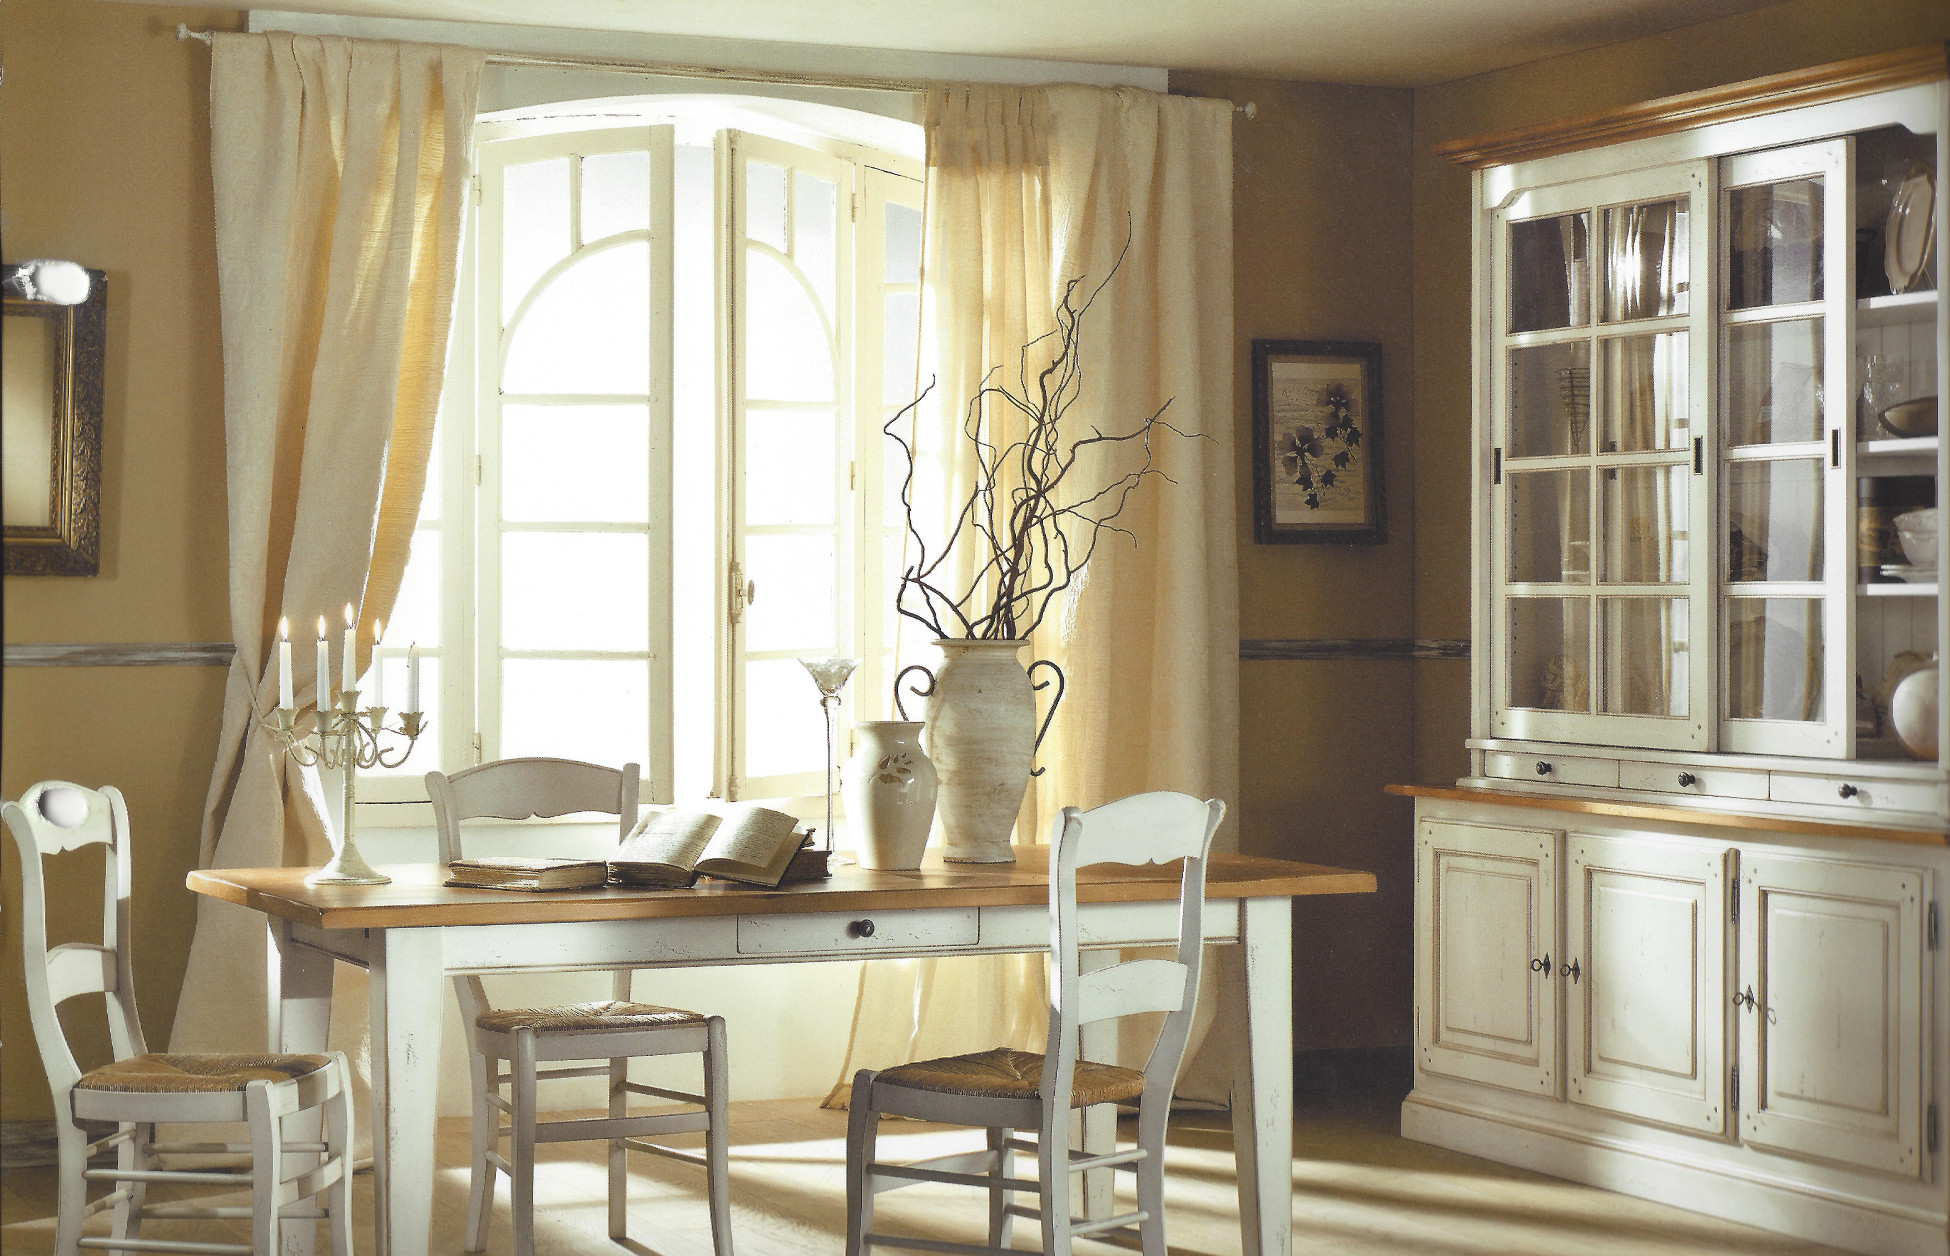 salle a manger provencale homeezy. Black Bedroom Furniture Sets. Home Design Ideas